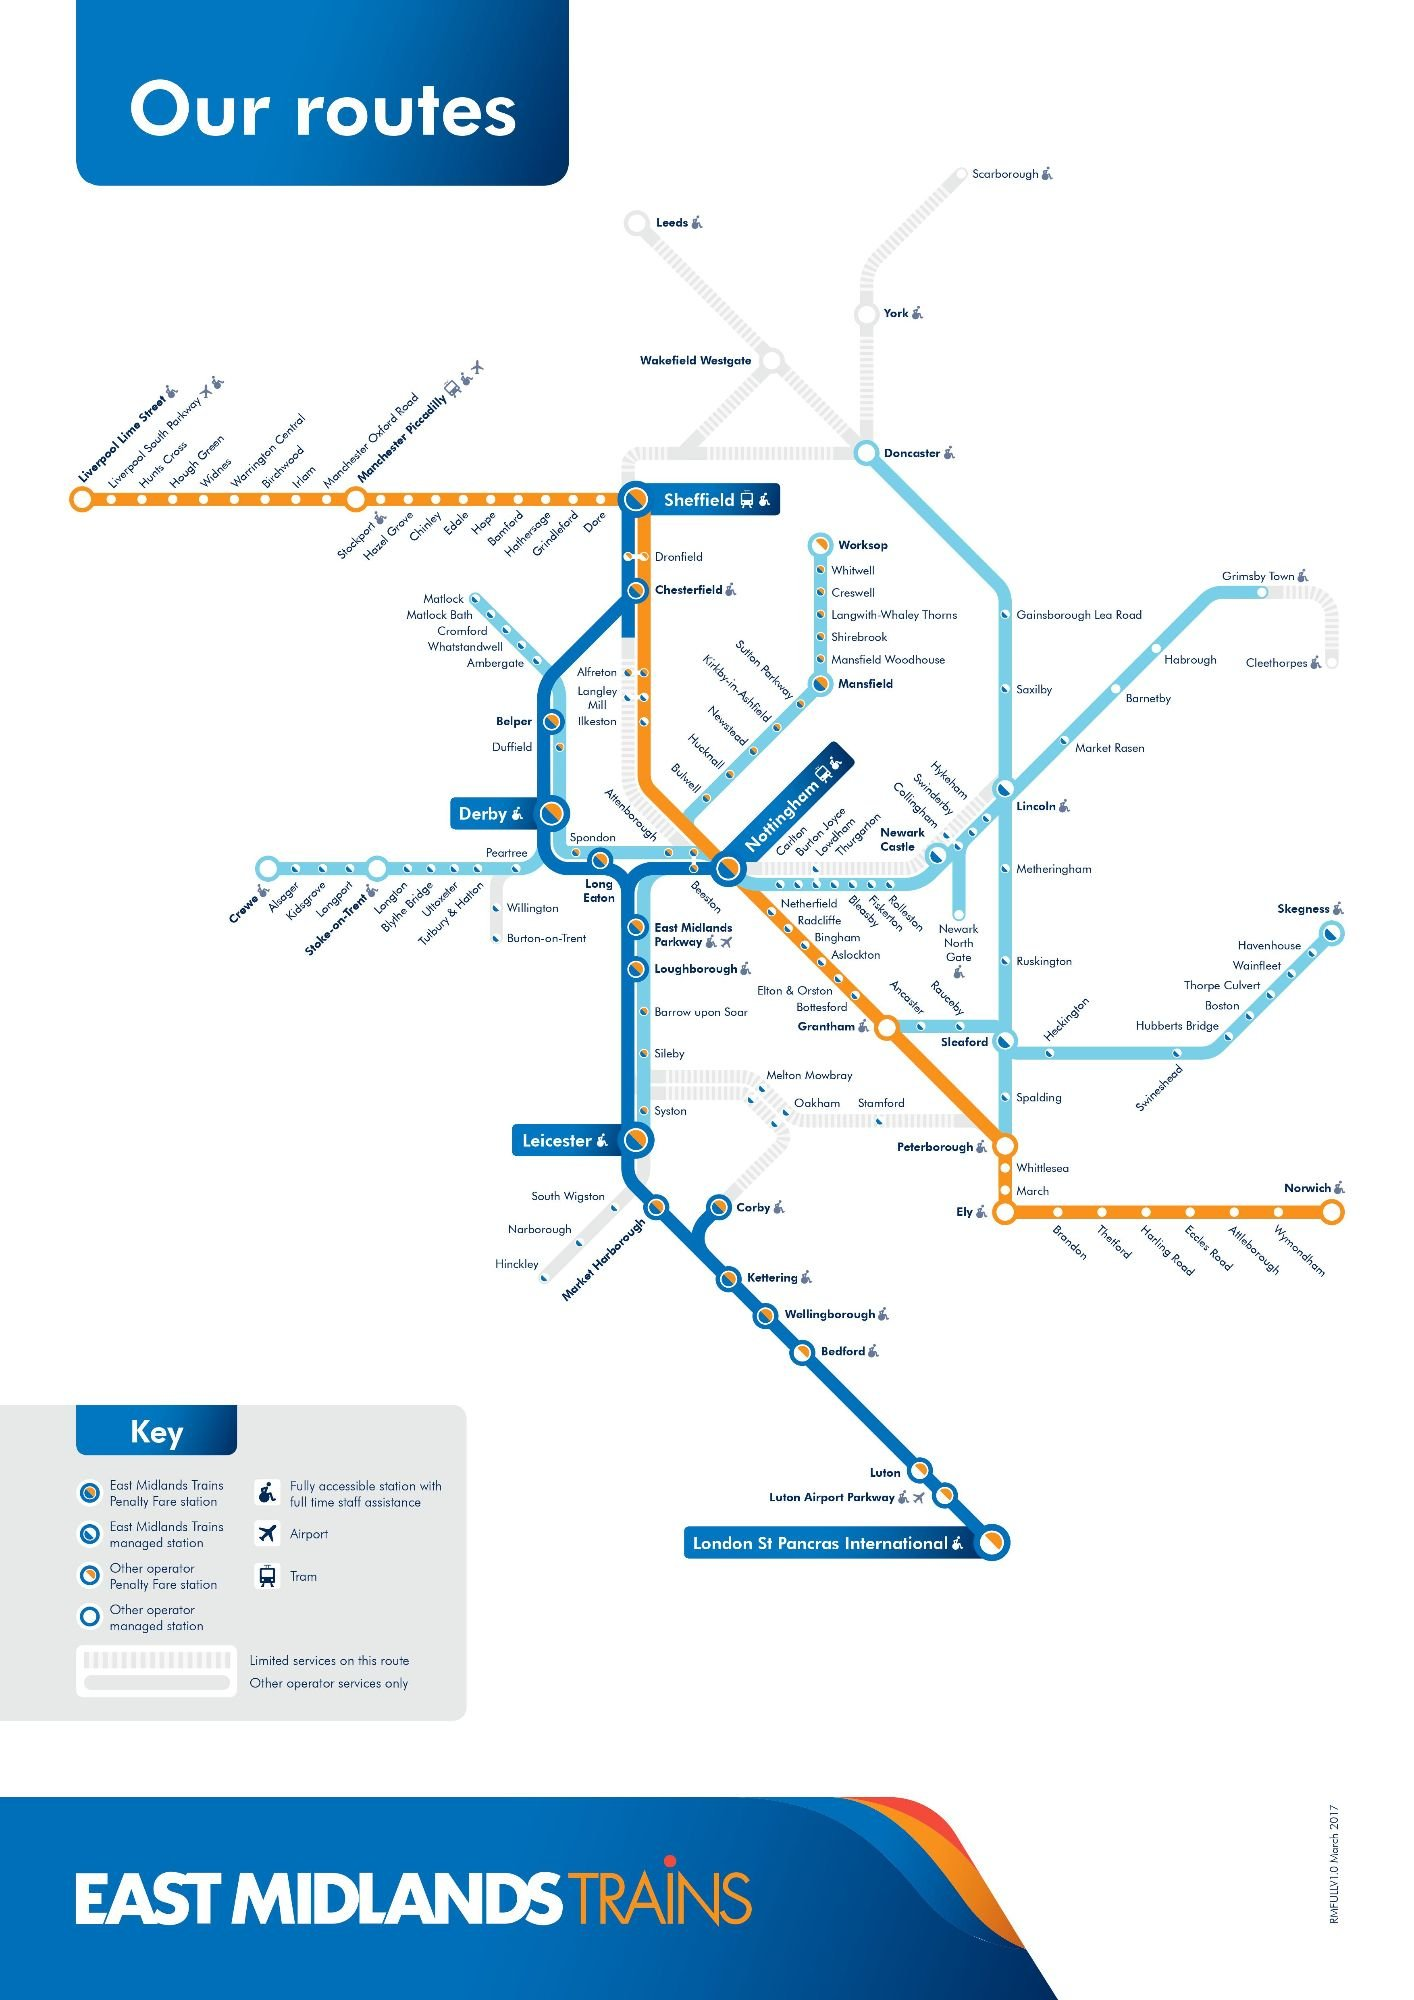 Image showing the East Midlands Trains route map circa 2018.